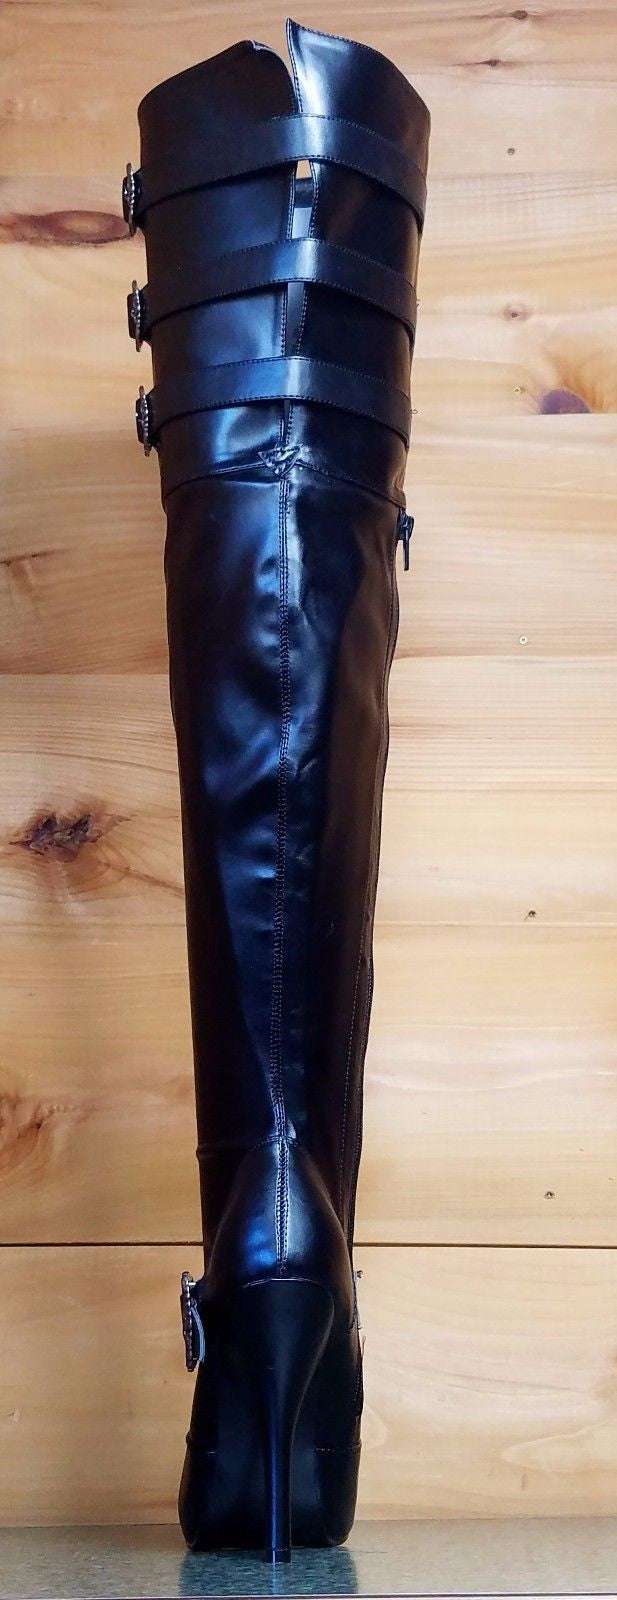 Diva Thigh High Plus Size Wide Top Shaft Boots Black Leatherette 7-13